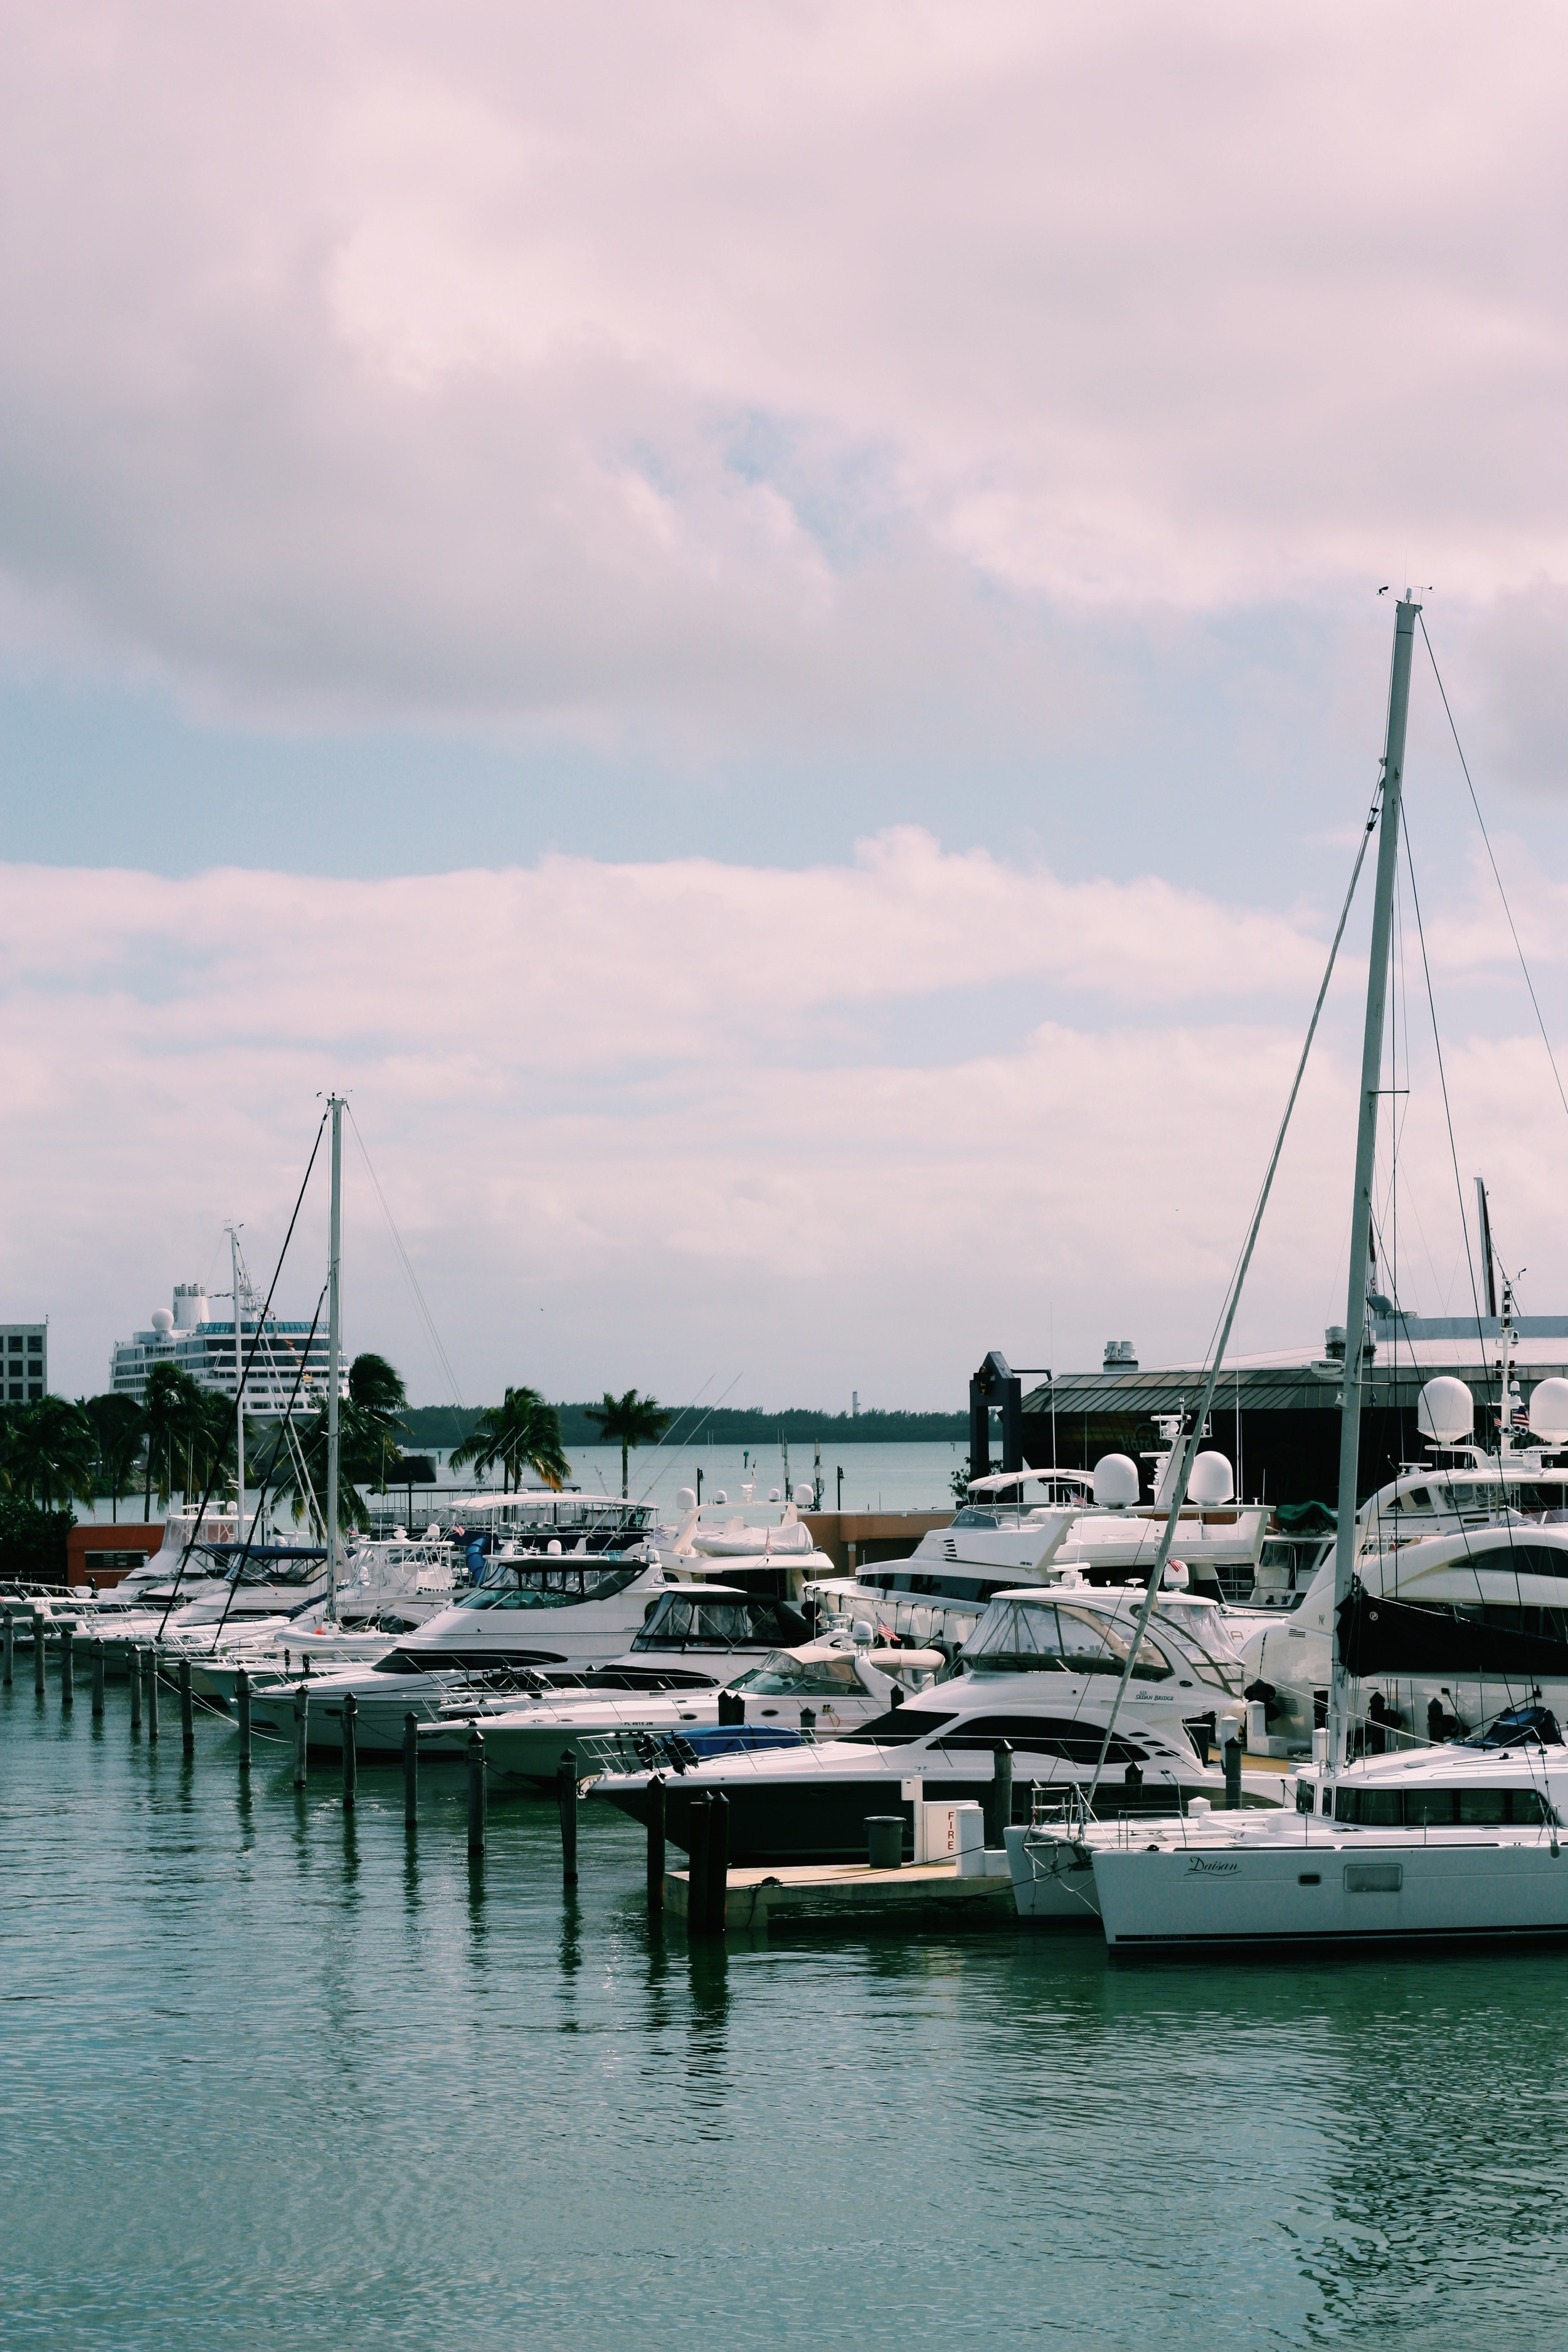 Bayside  .Compared to the hustle and bustle of New York City, Miami has a playful kind of energy that is more laidback.